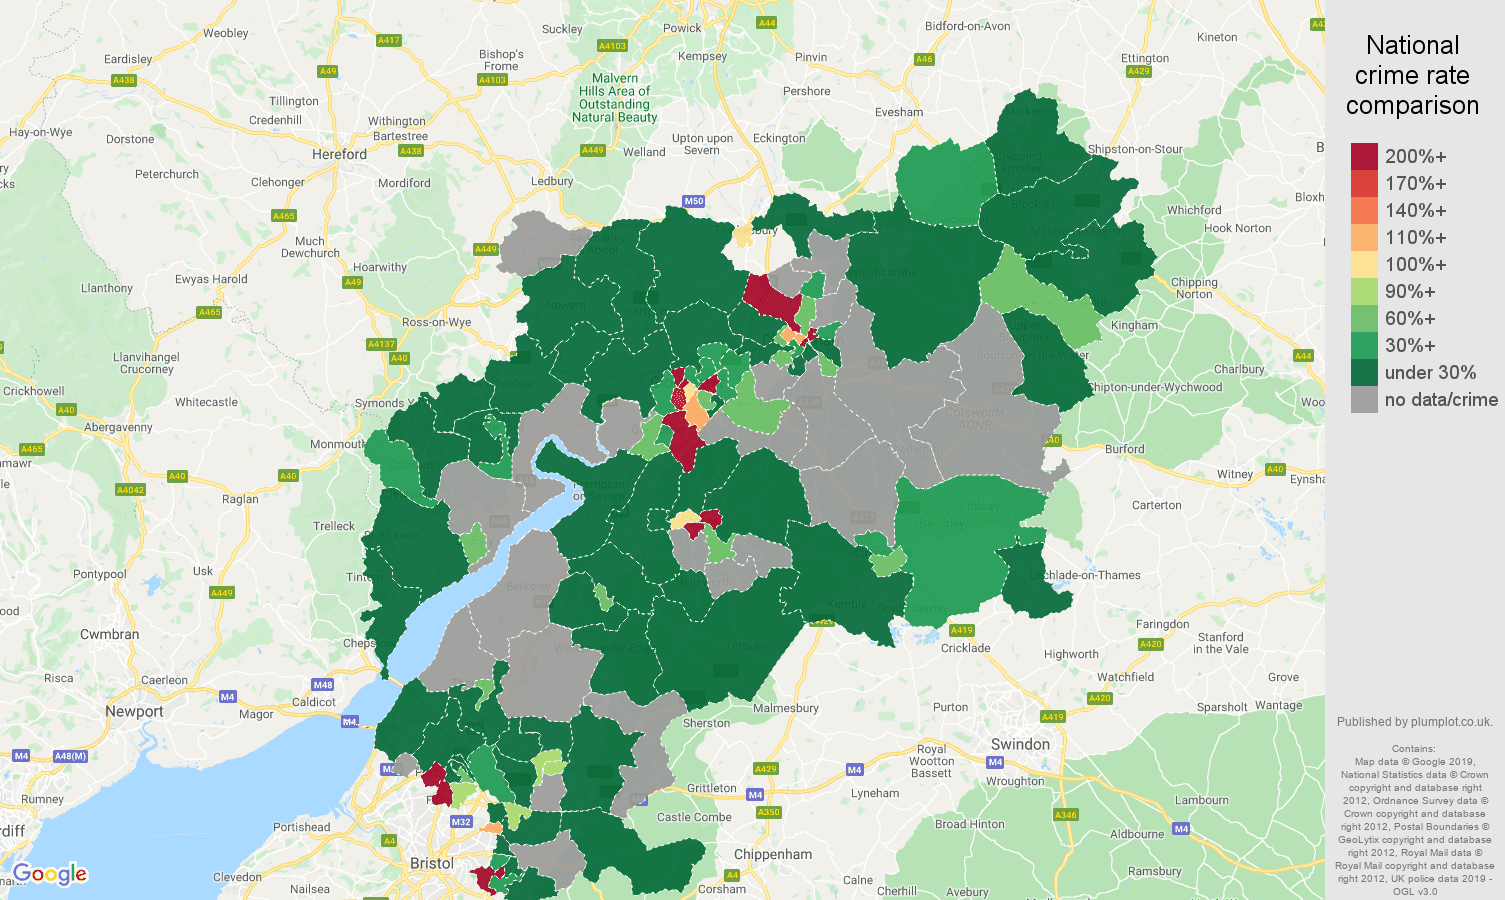 Gloucestershire shoplifting crime rate comparison map